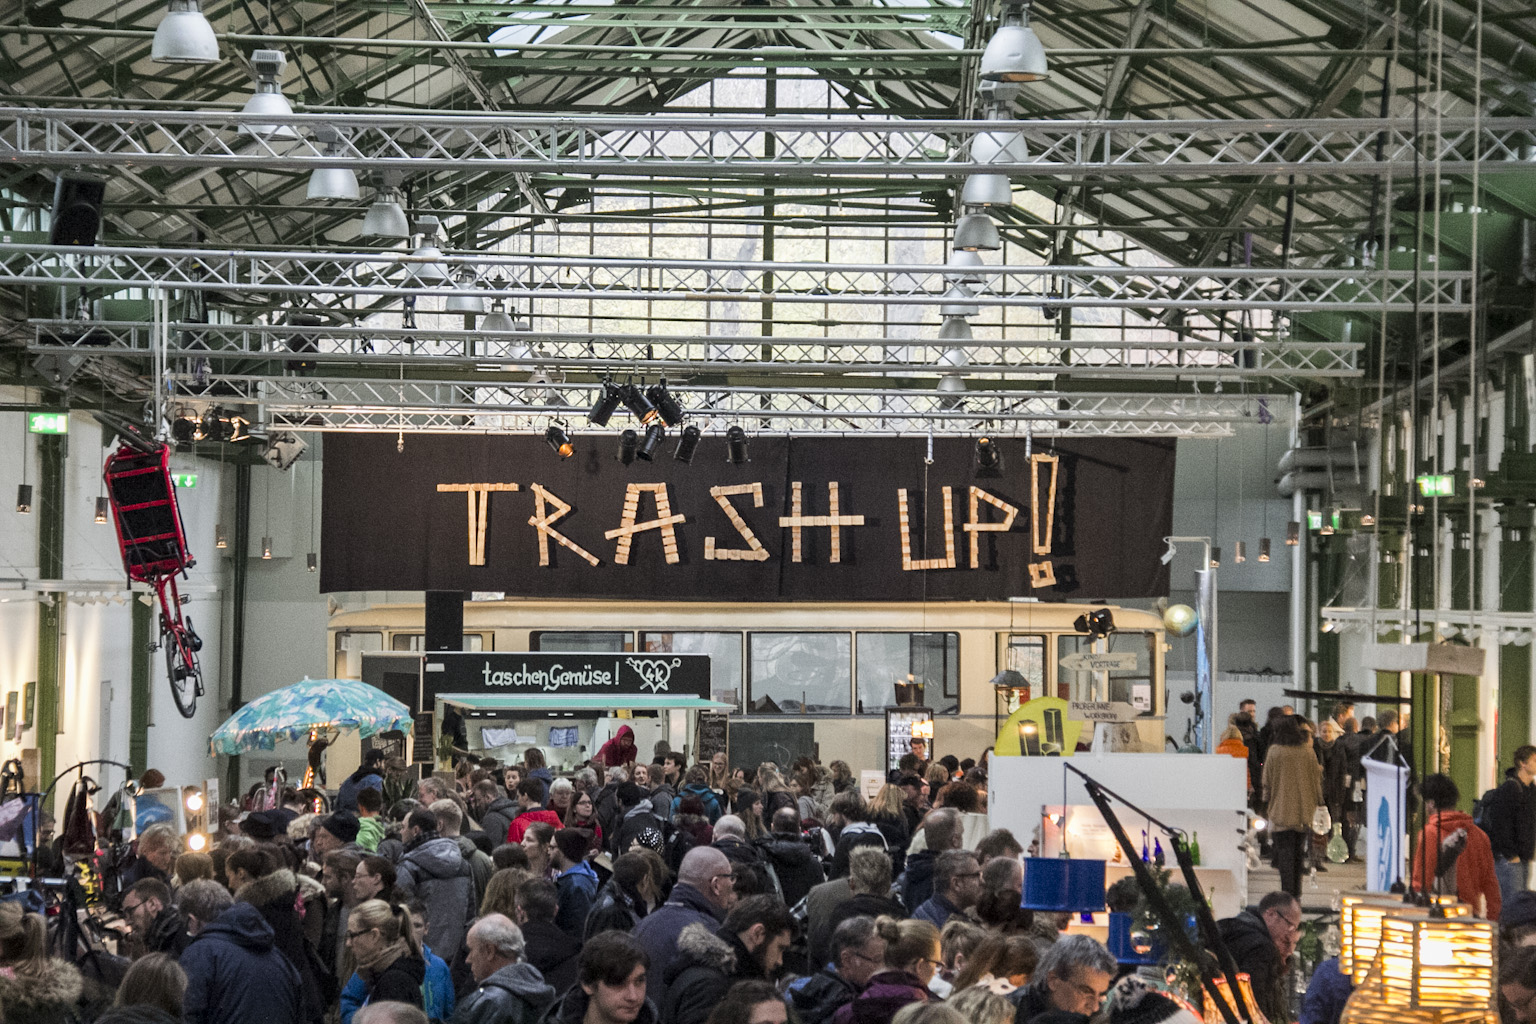 Trash Up! Das Upcycling-Festival im Depot Dortmund